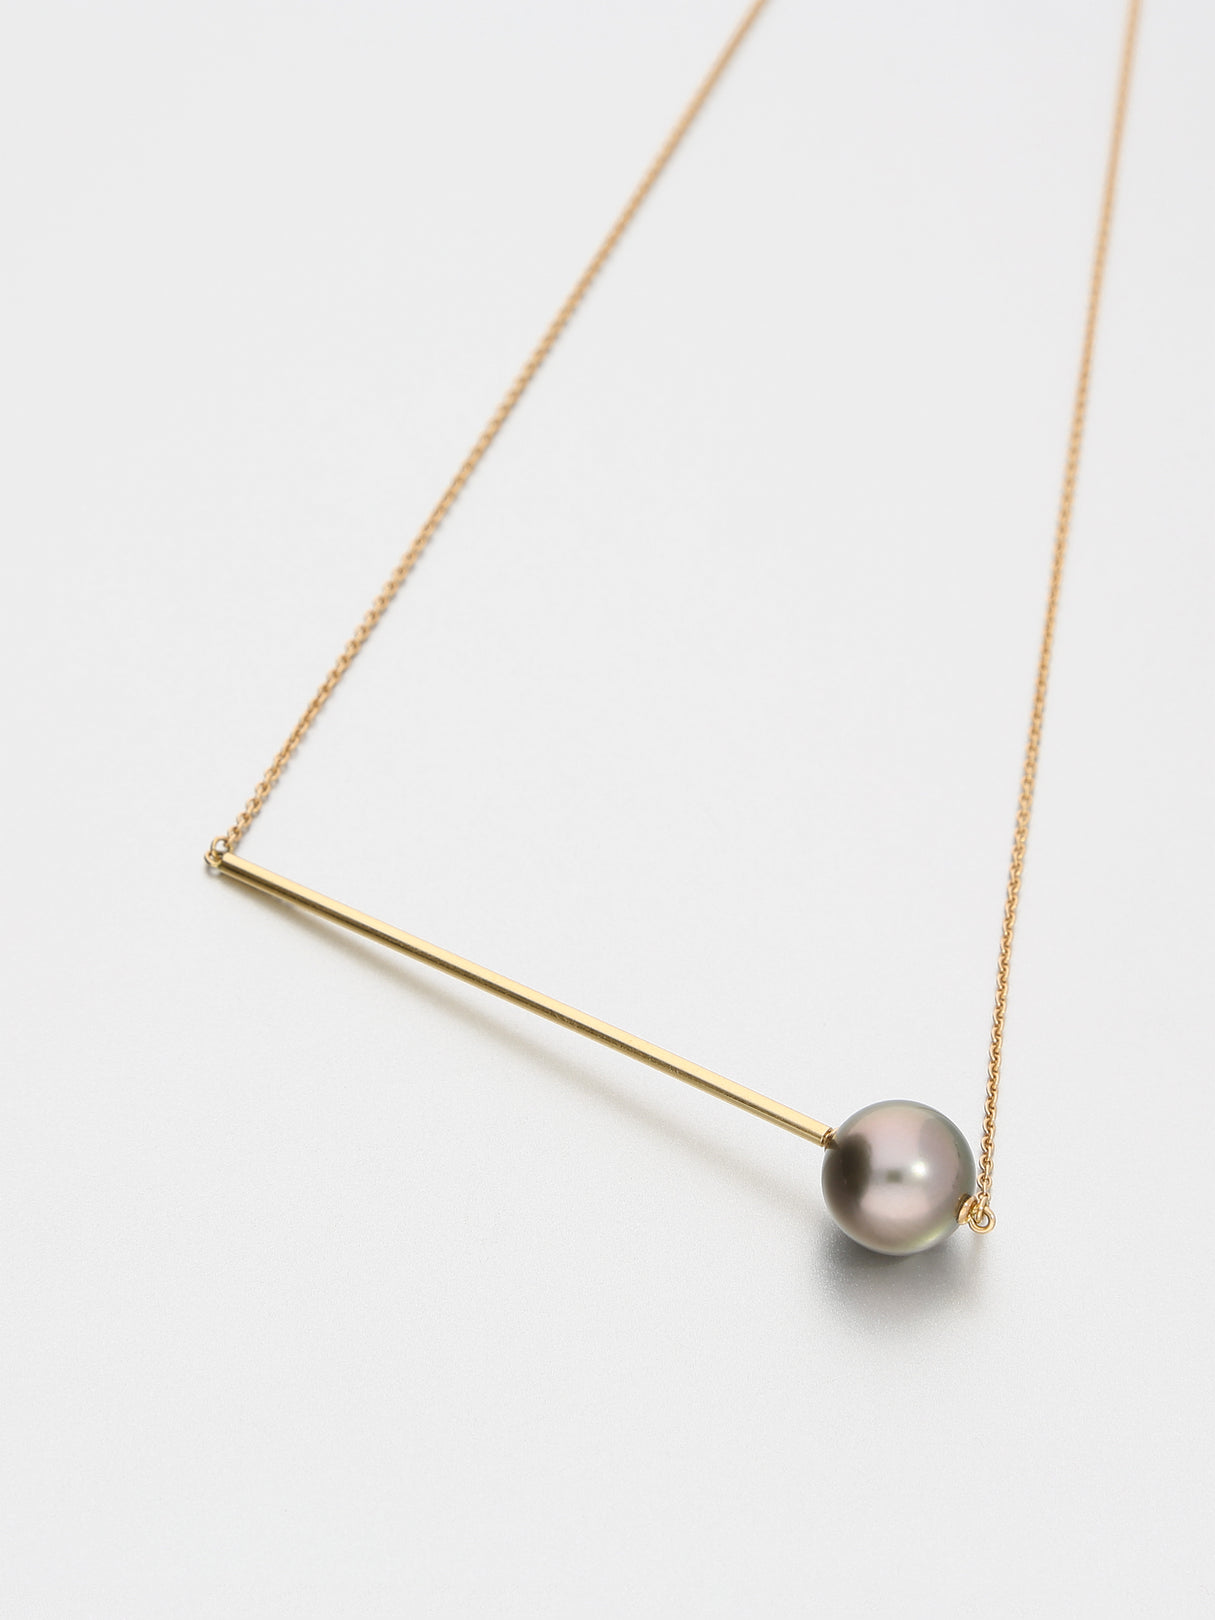 Abacus Pearl Necklace, Rose gold with Tahitian dark grey pearl 11mm